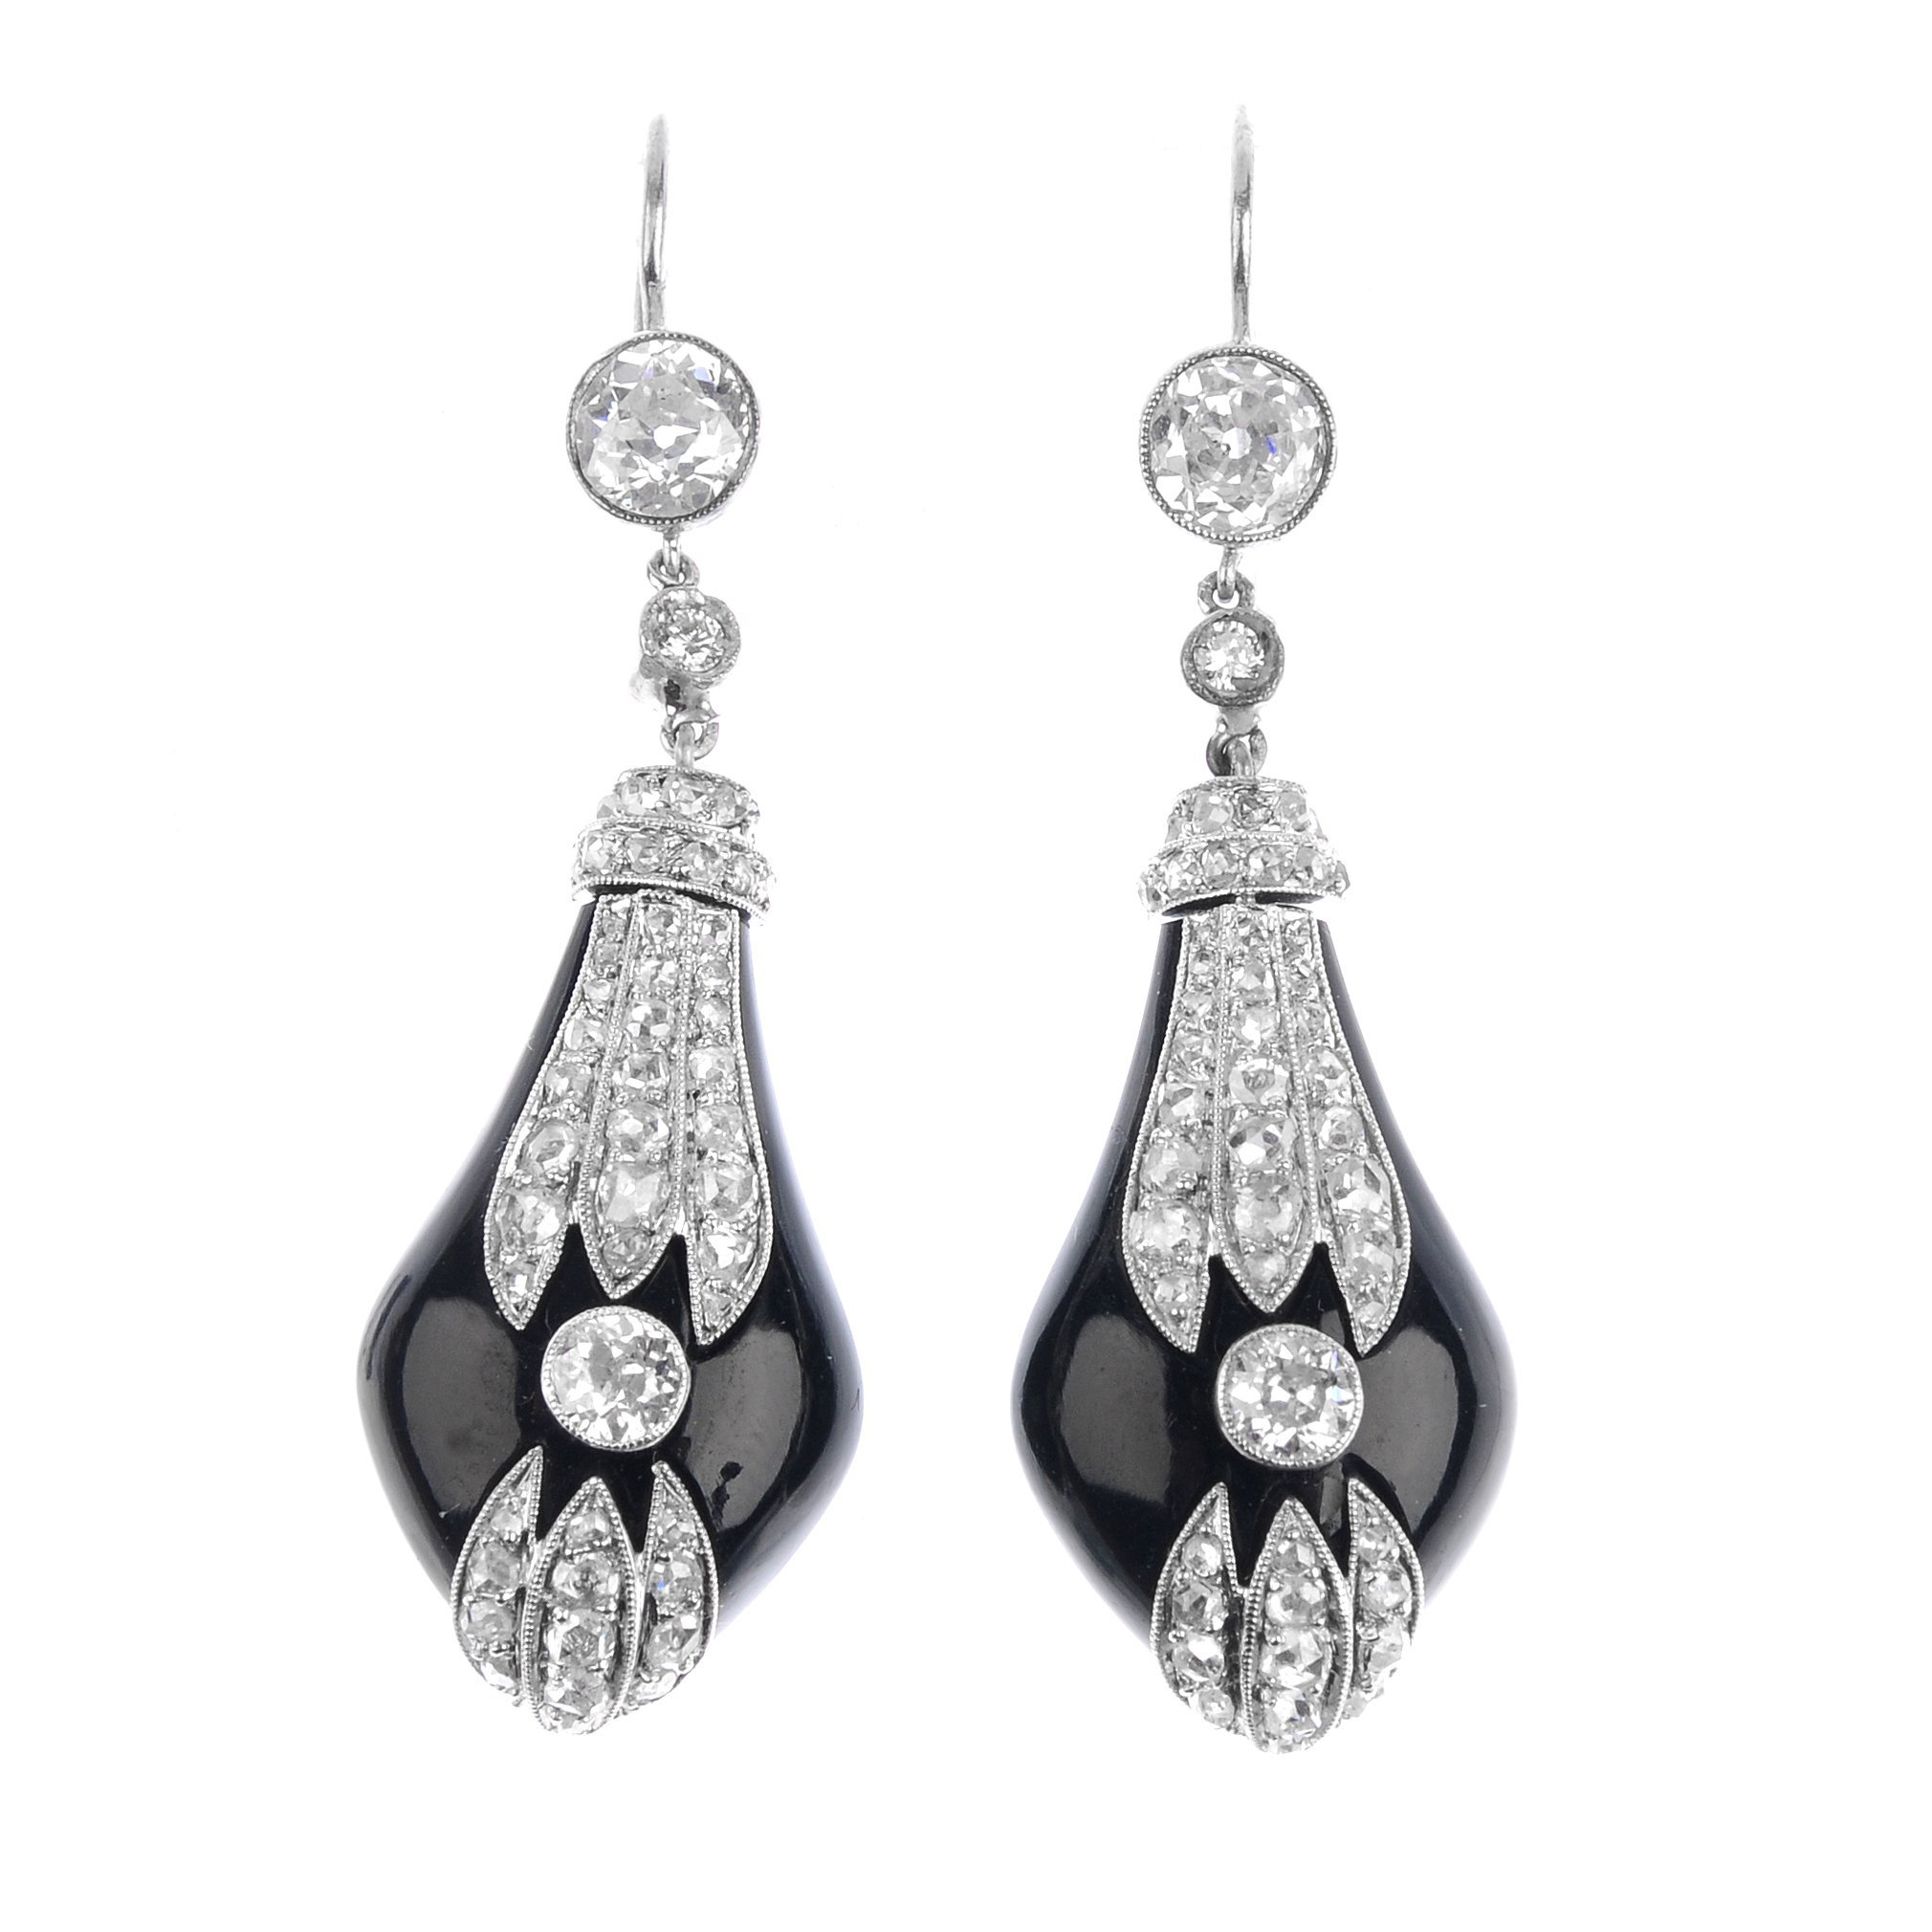 "<a href=""https://www.fellows.co.uk/2104-lot-104-A-pair-of-diamond-and-onyx-earrings?utm_source=Ageless%20Heirlooms&utm_medium=blog&utm_campaign=Ageless%20Heirlooms%20Vintage&utm_content=Blog%20and%20social"">LOT 104</a>"